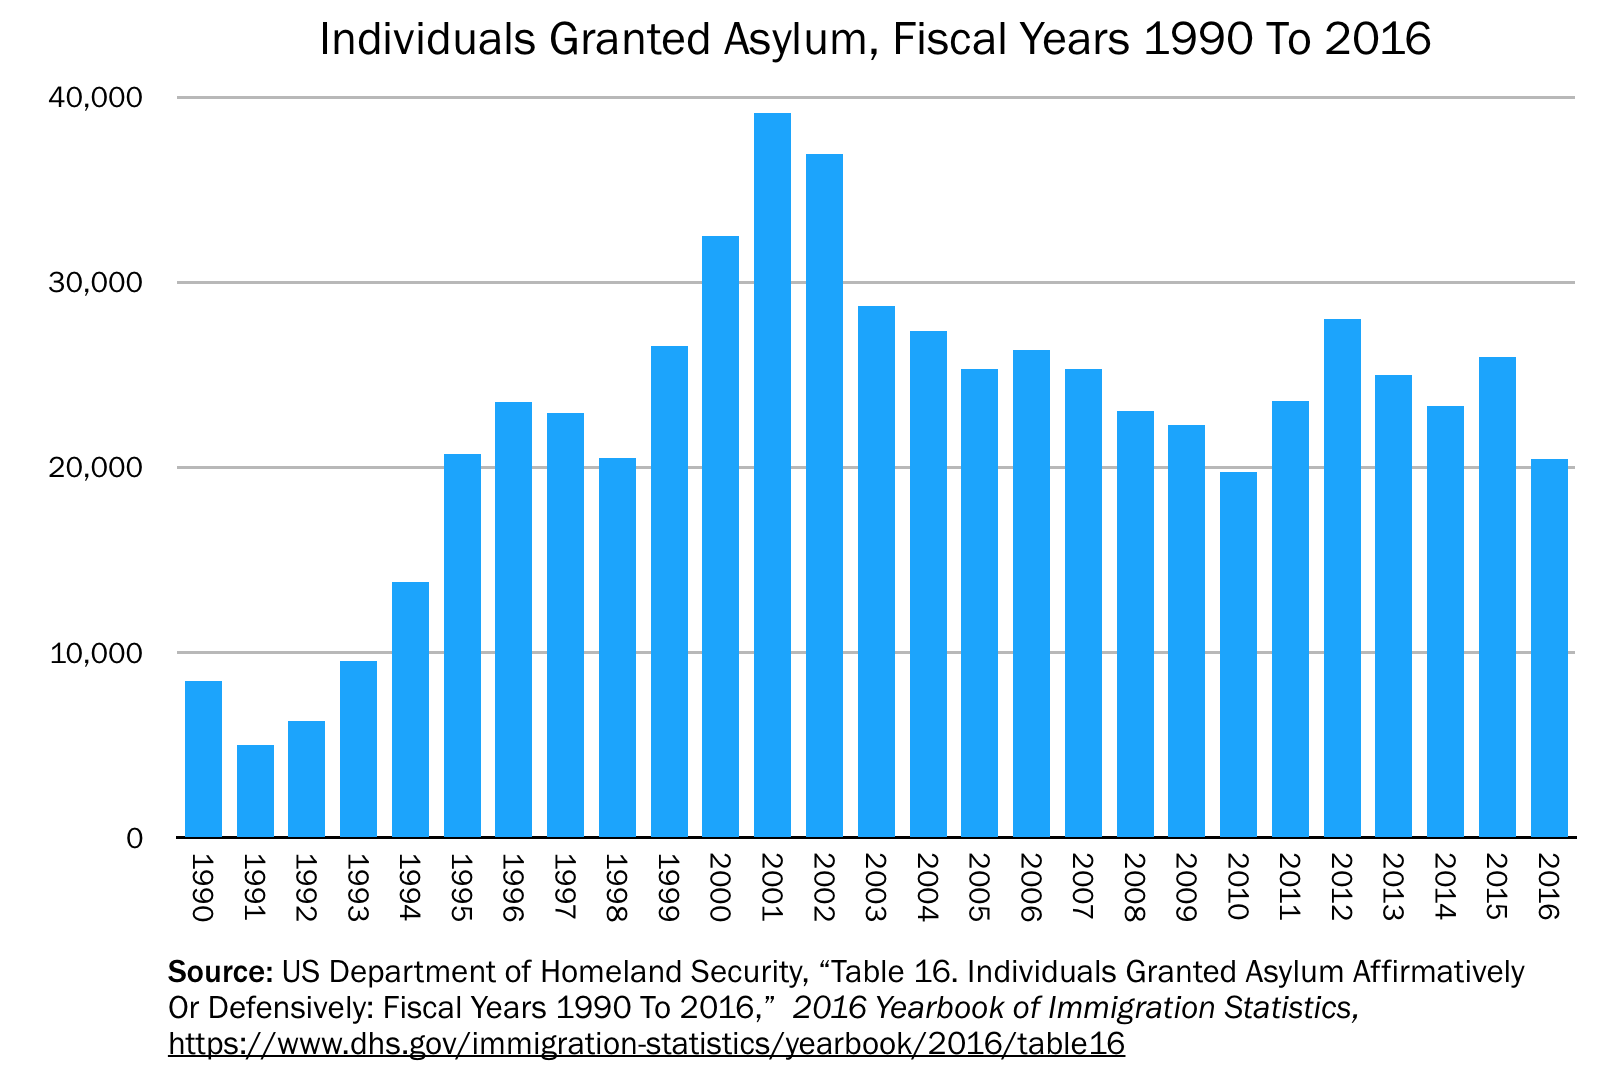 asylum in the united states - wikipedia